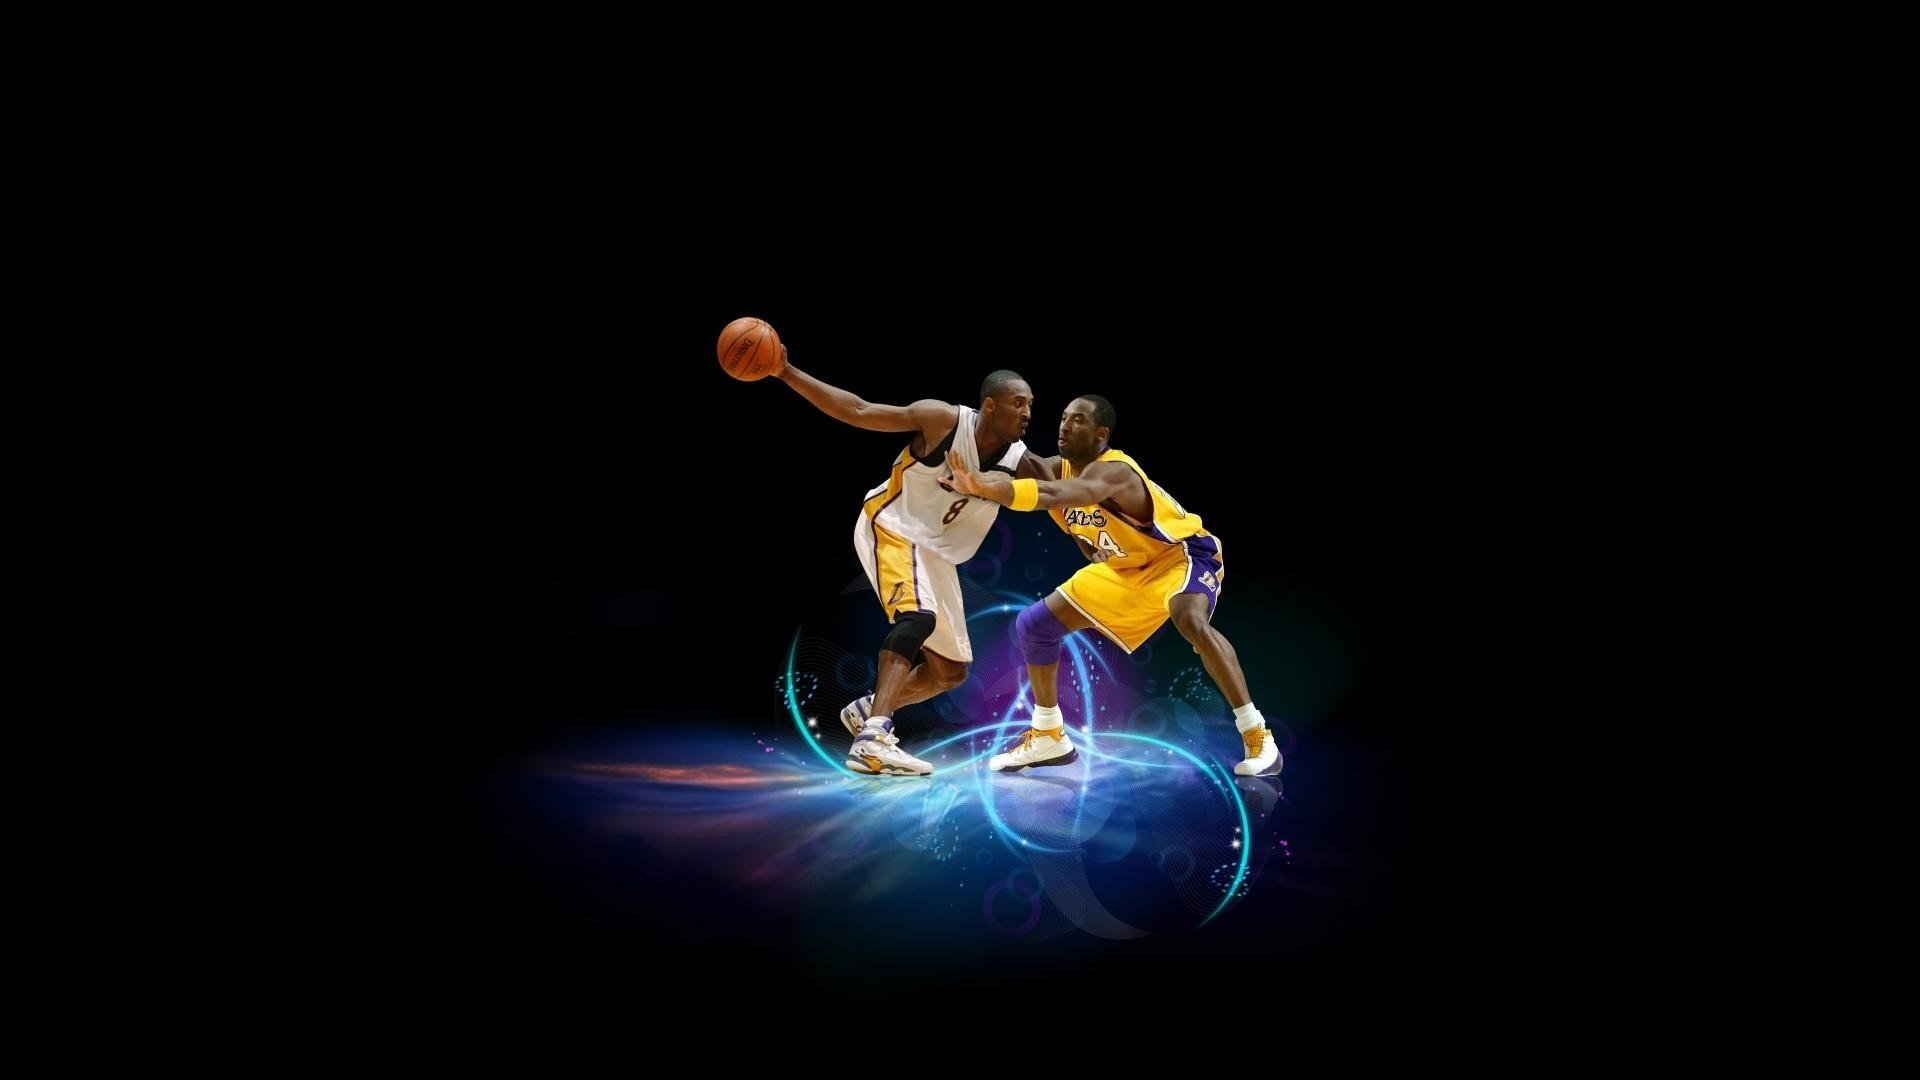 basketball hd wallpapers sport photo basketball hd wallpaperjpg 1920x1080